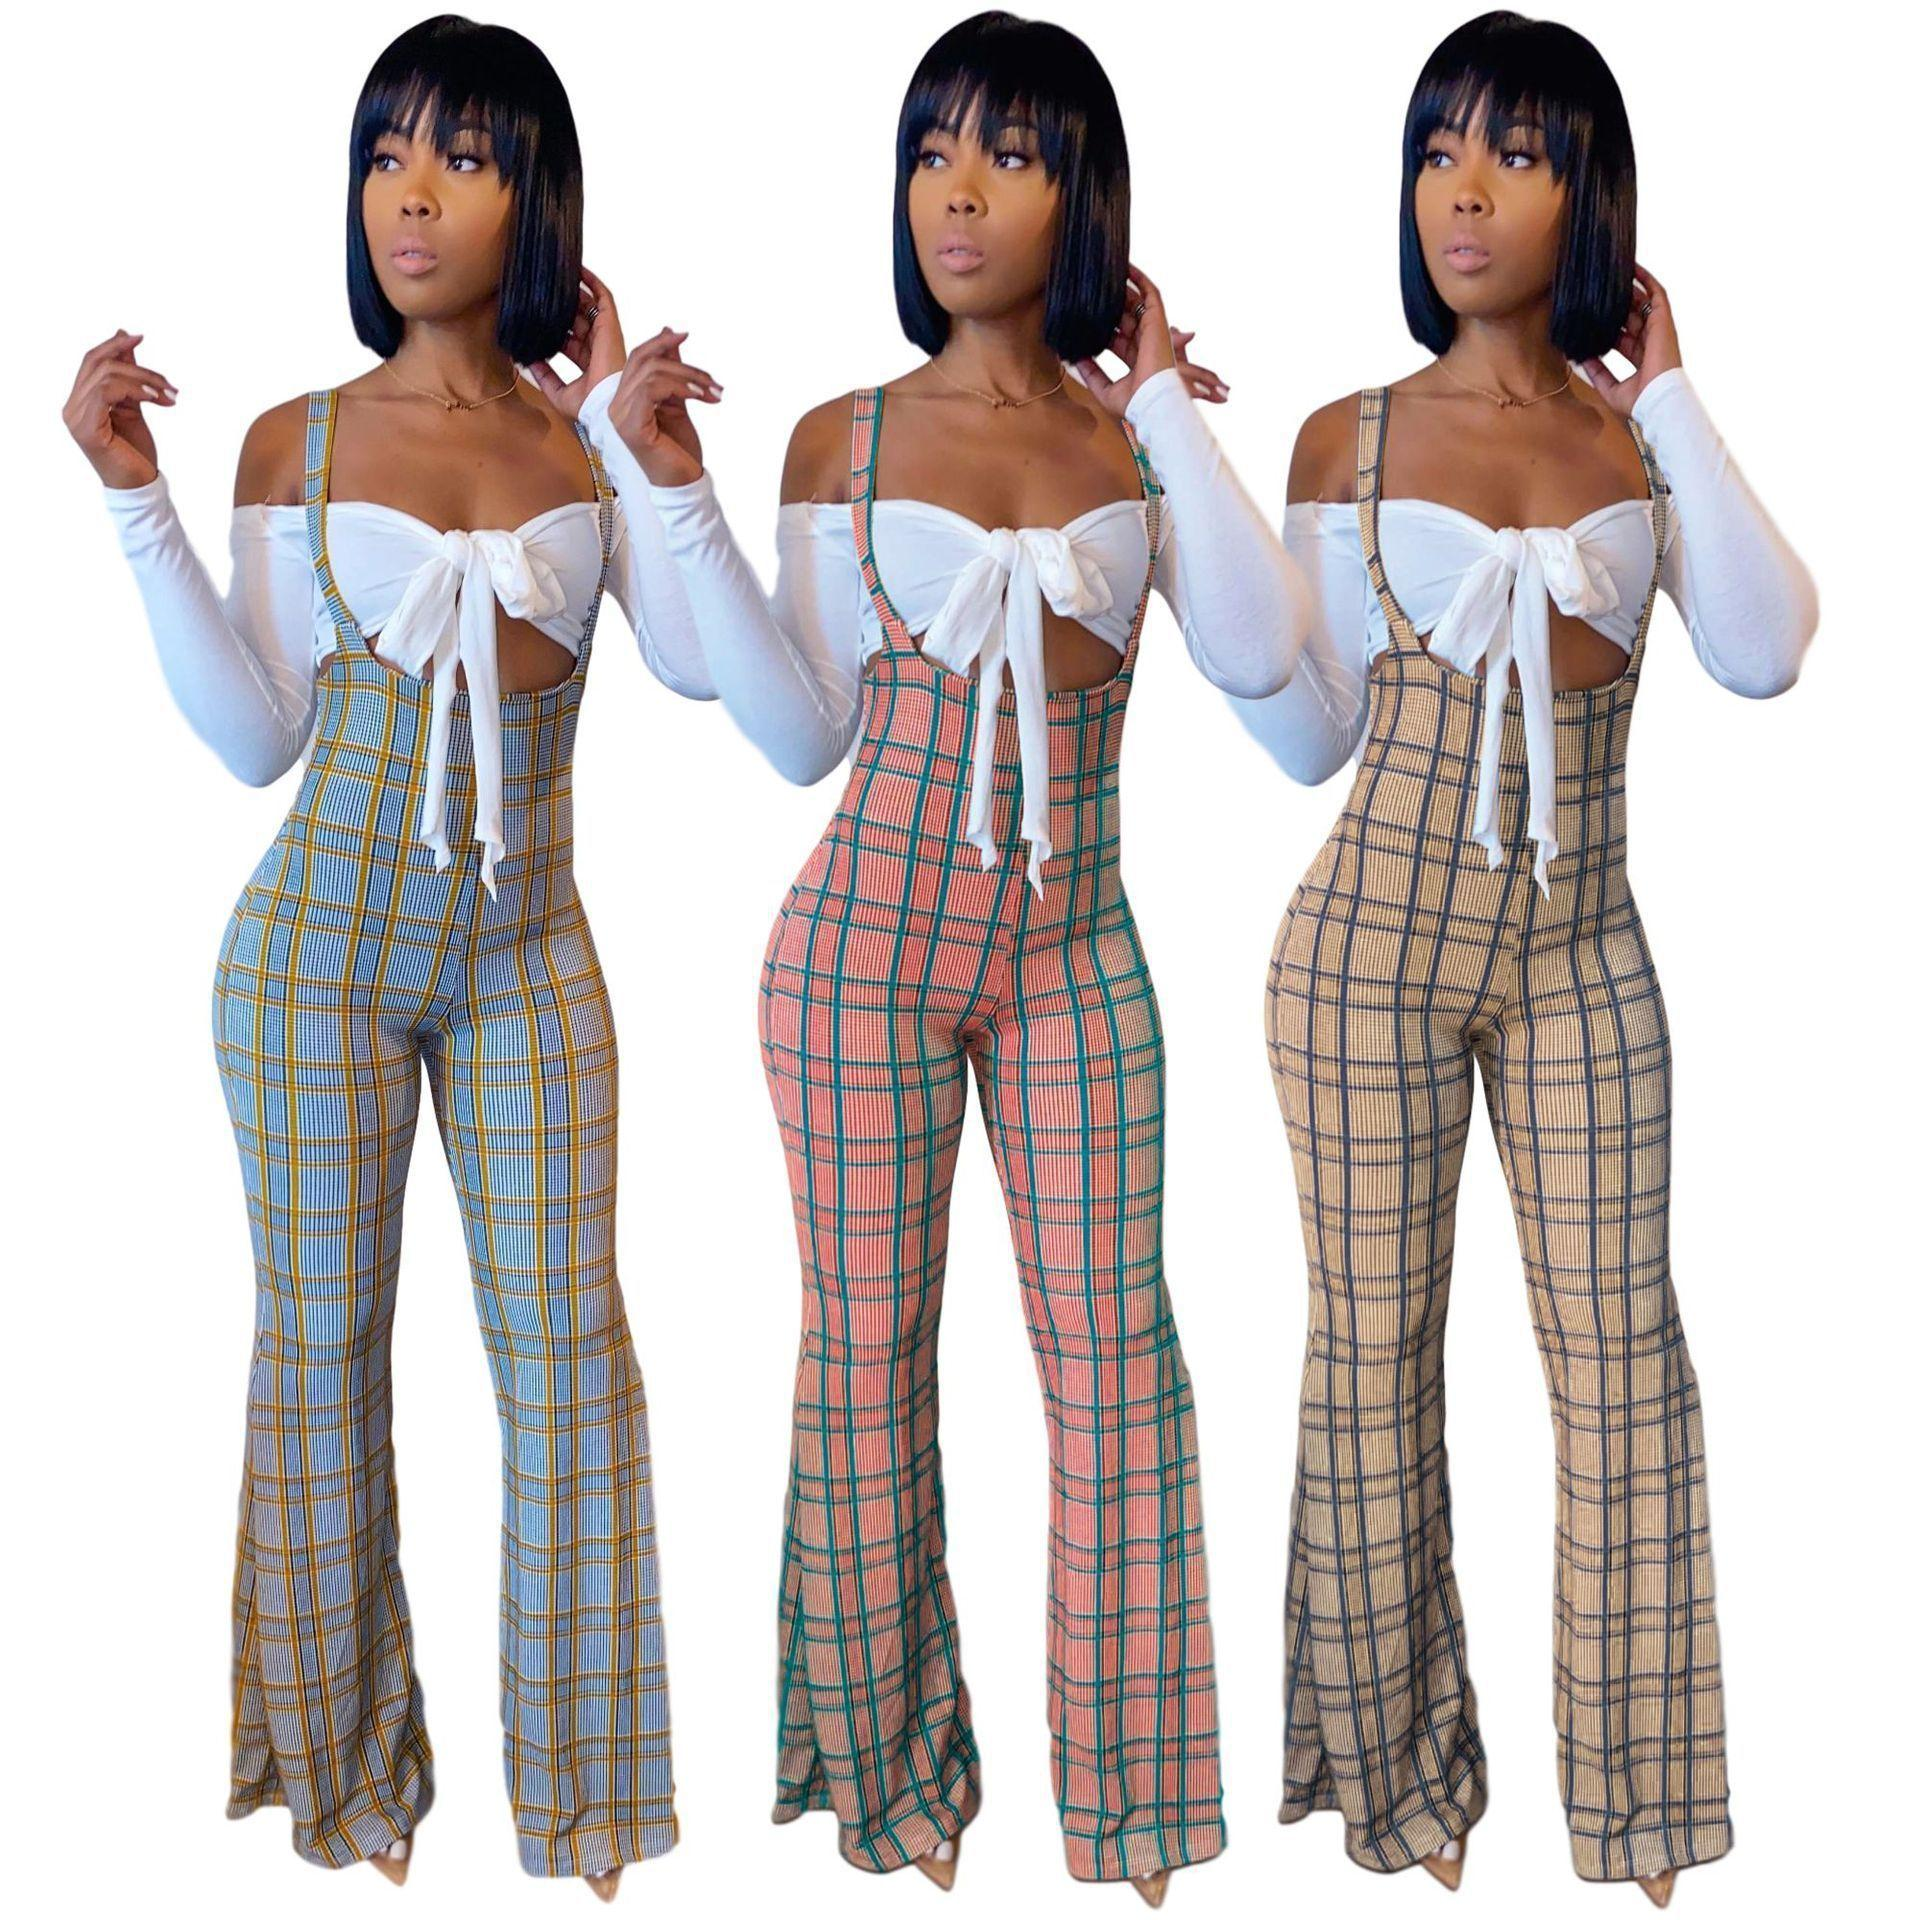 2020 Autnmn Women Designer Fashion Clothing Sexy Jumpsuit Long Sleeve Plaid Printed Jumpsuit The New Arrivals Listing